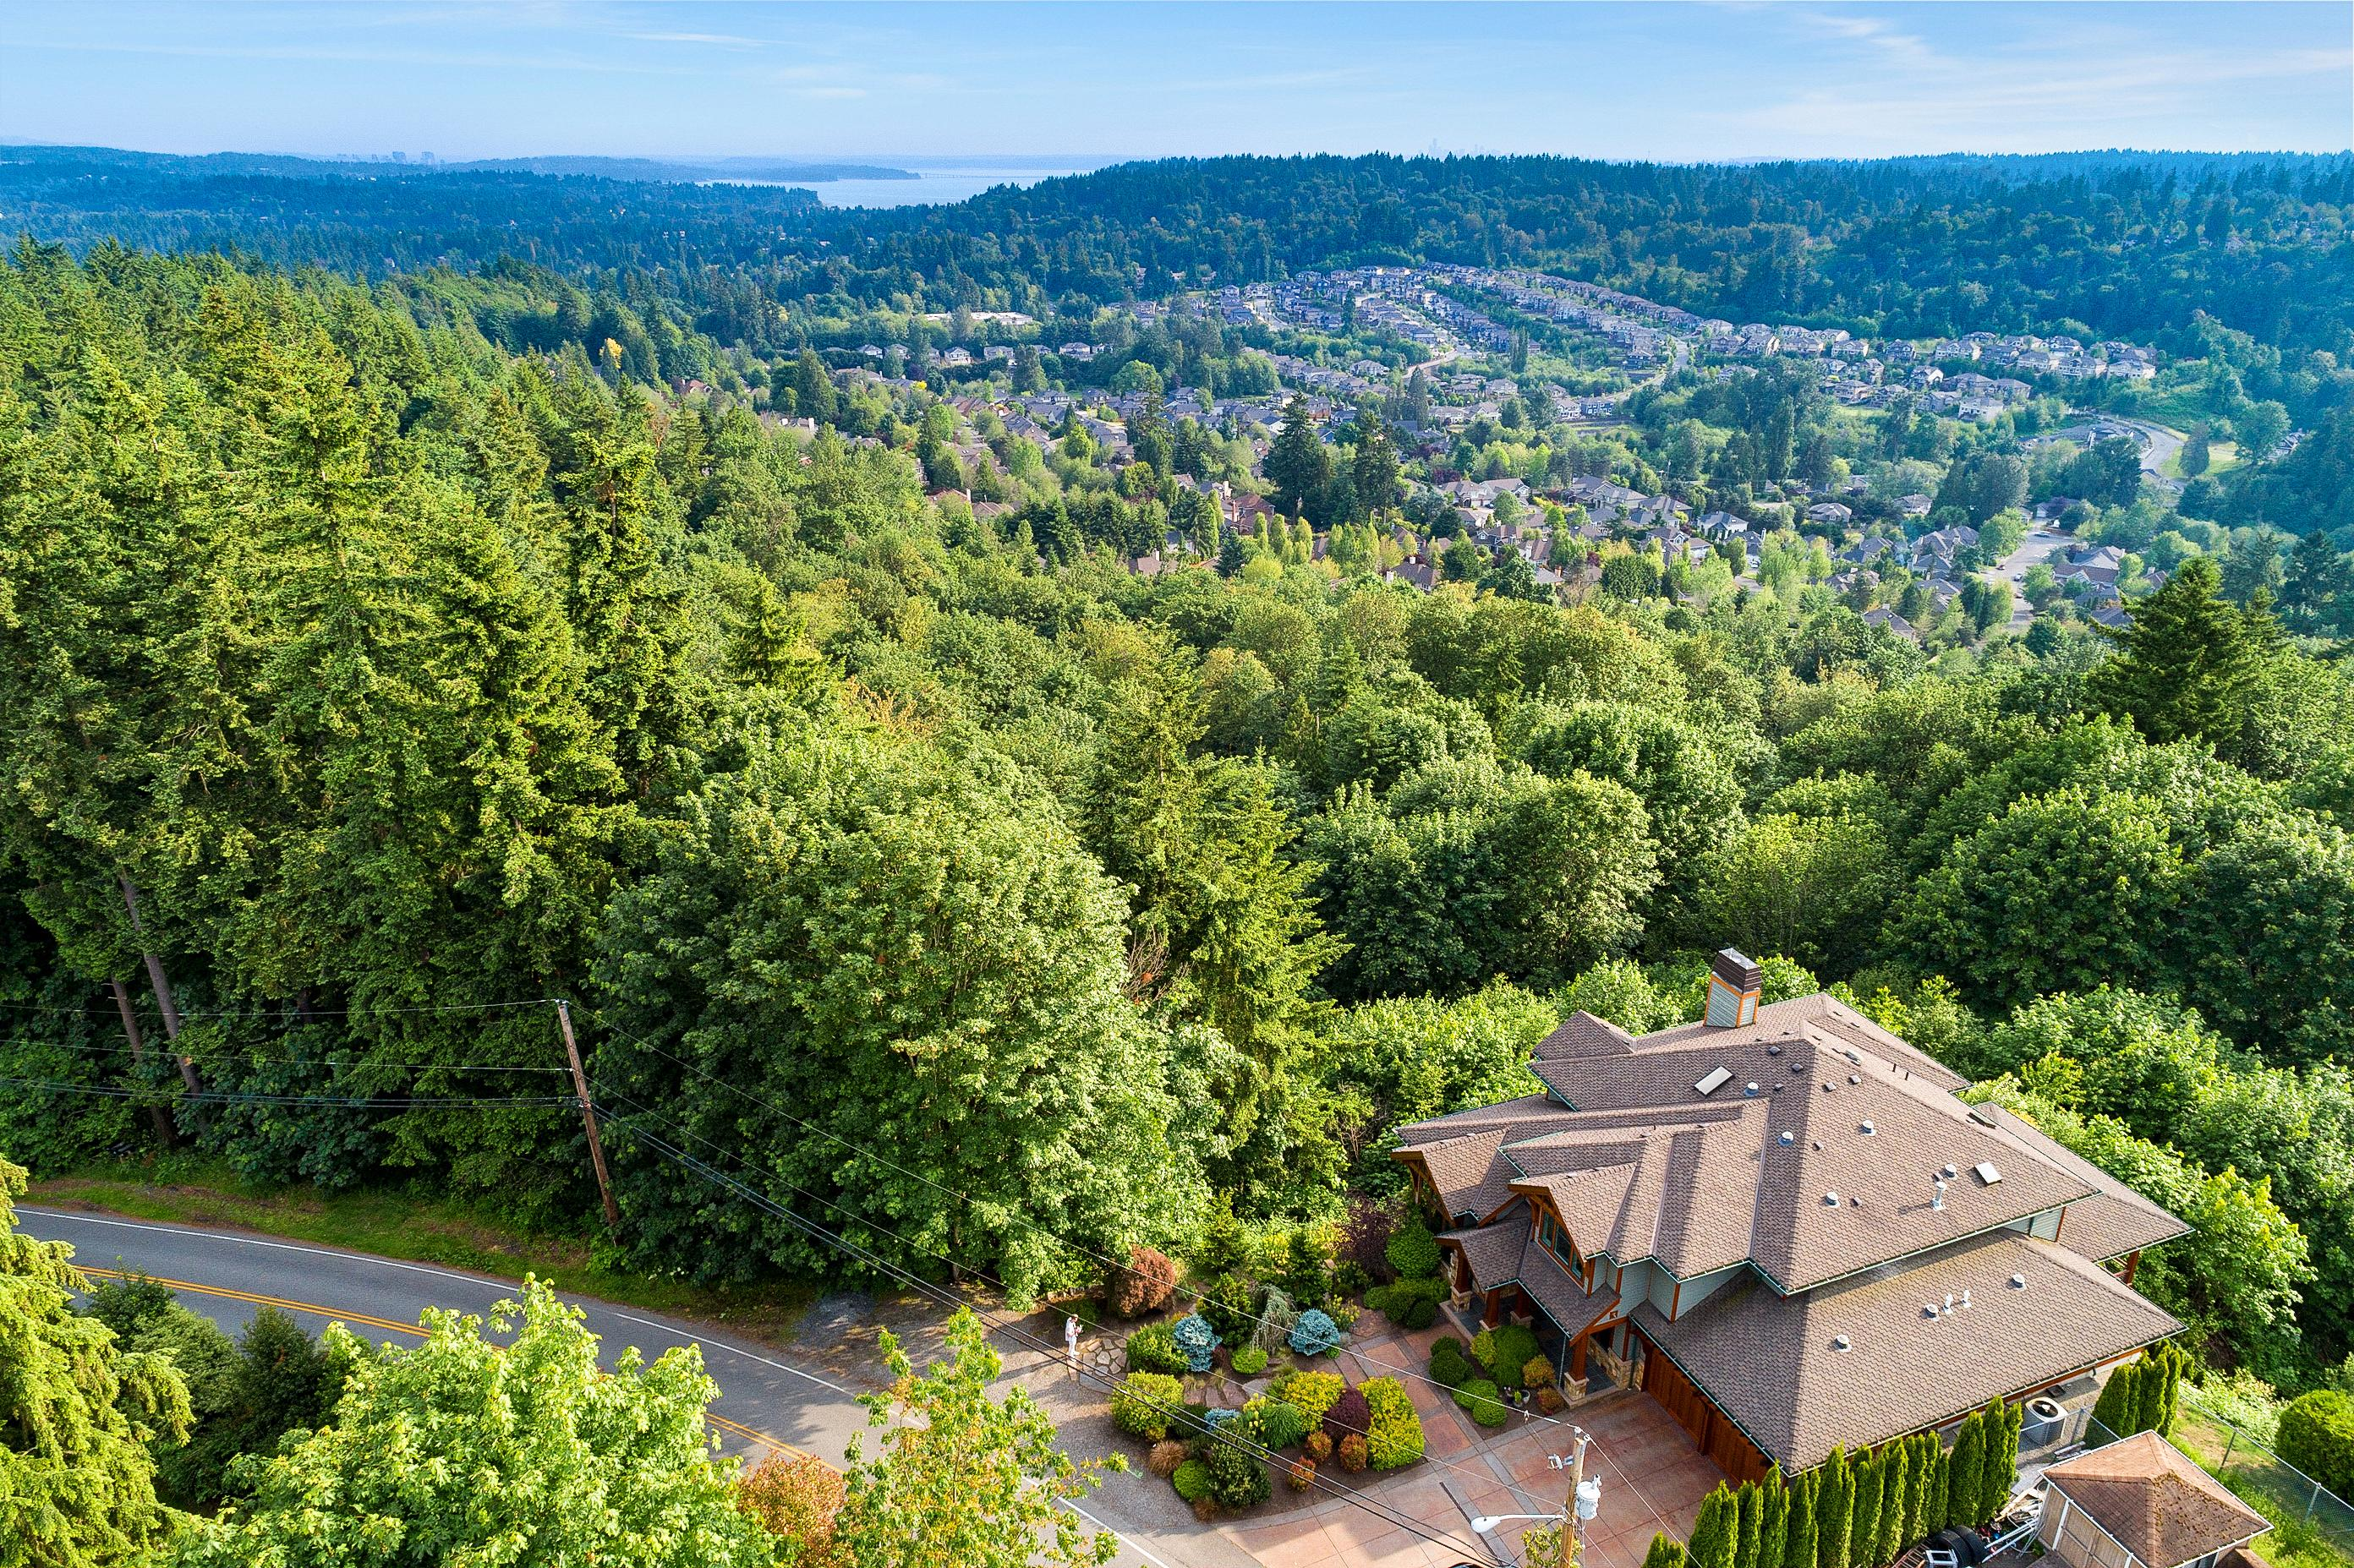 This beautiful Bothell home is not only surrounded by lush green scenery but was the winner of the 2018 HGTV Ultimate House Hunt! The Craftsman Estate exhibits outstanding craftsmanship, complete privacy and awe-inspiring, 180 degree views. The home is custom built and designed to provide the ultimate indoor to outdoor living and entertaining experience. There is both south and west exposure with walls of windows. In the lower level of the home, there is over 2000 square feet of living space with a media room, second kitchen, second utility room, bedroom and bonus room.{ }Listed by Windermere, the Bothell home is 5,840 square feet with 4 beds, 4 baths and is listed for $2M. (Image courtesy of Windermere).